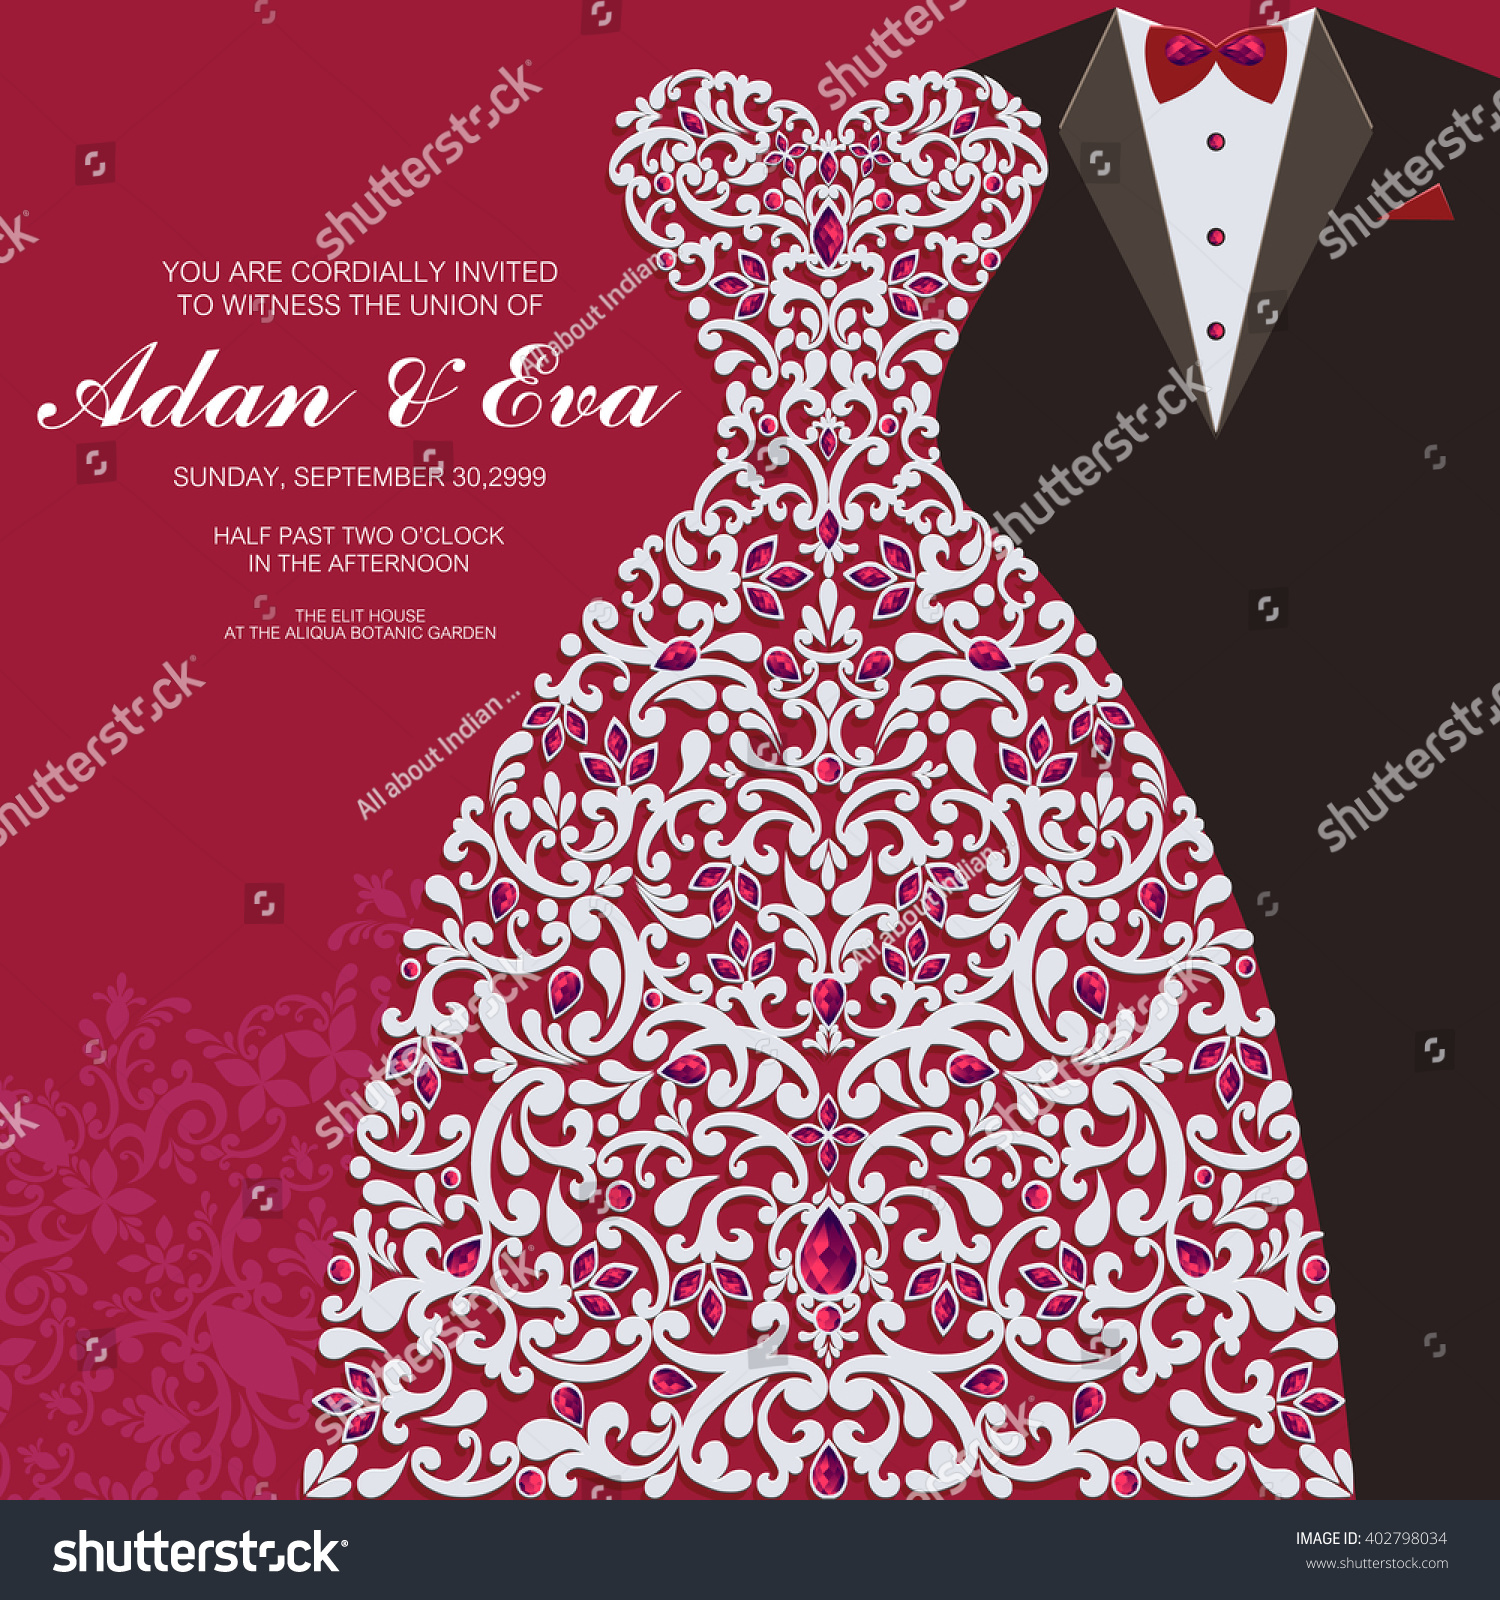 Wedding Invitations Pictures was adorable invitation design